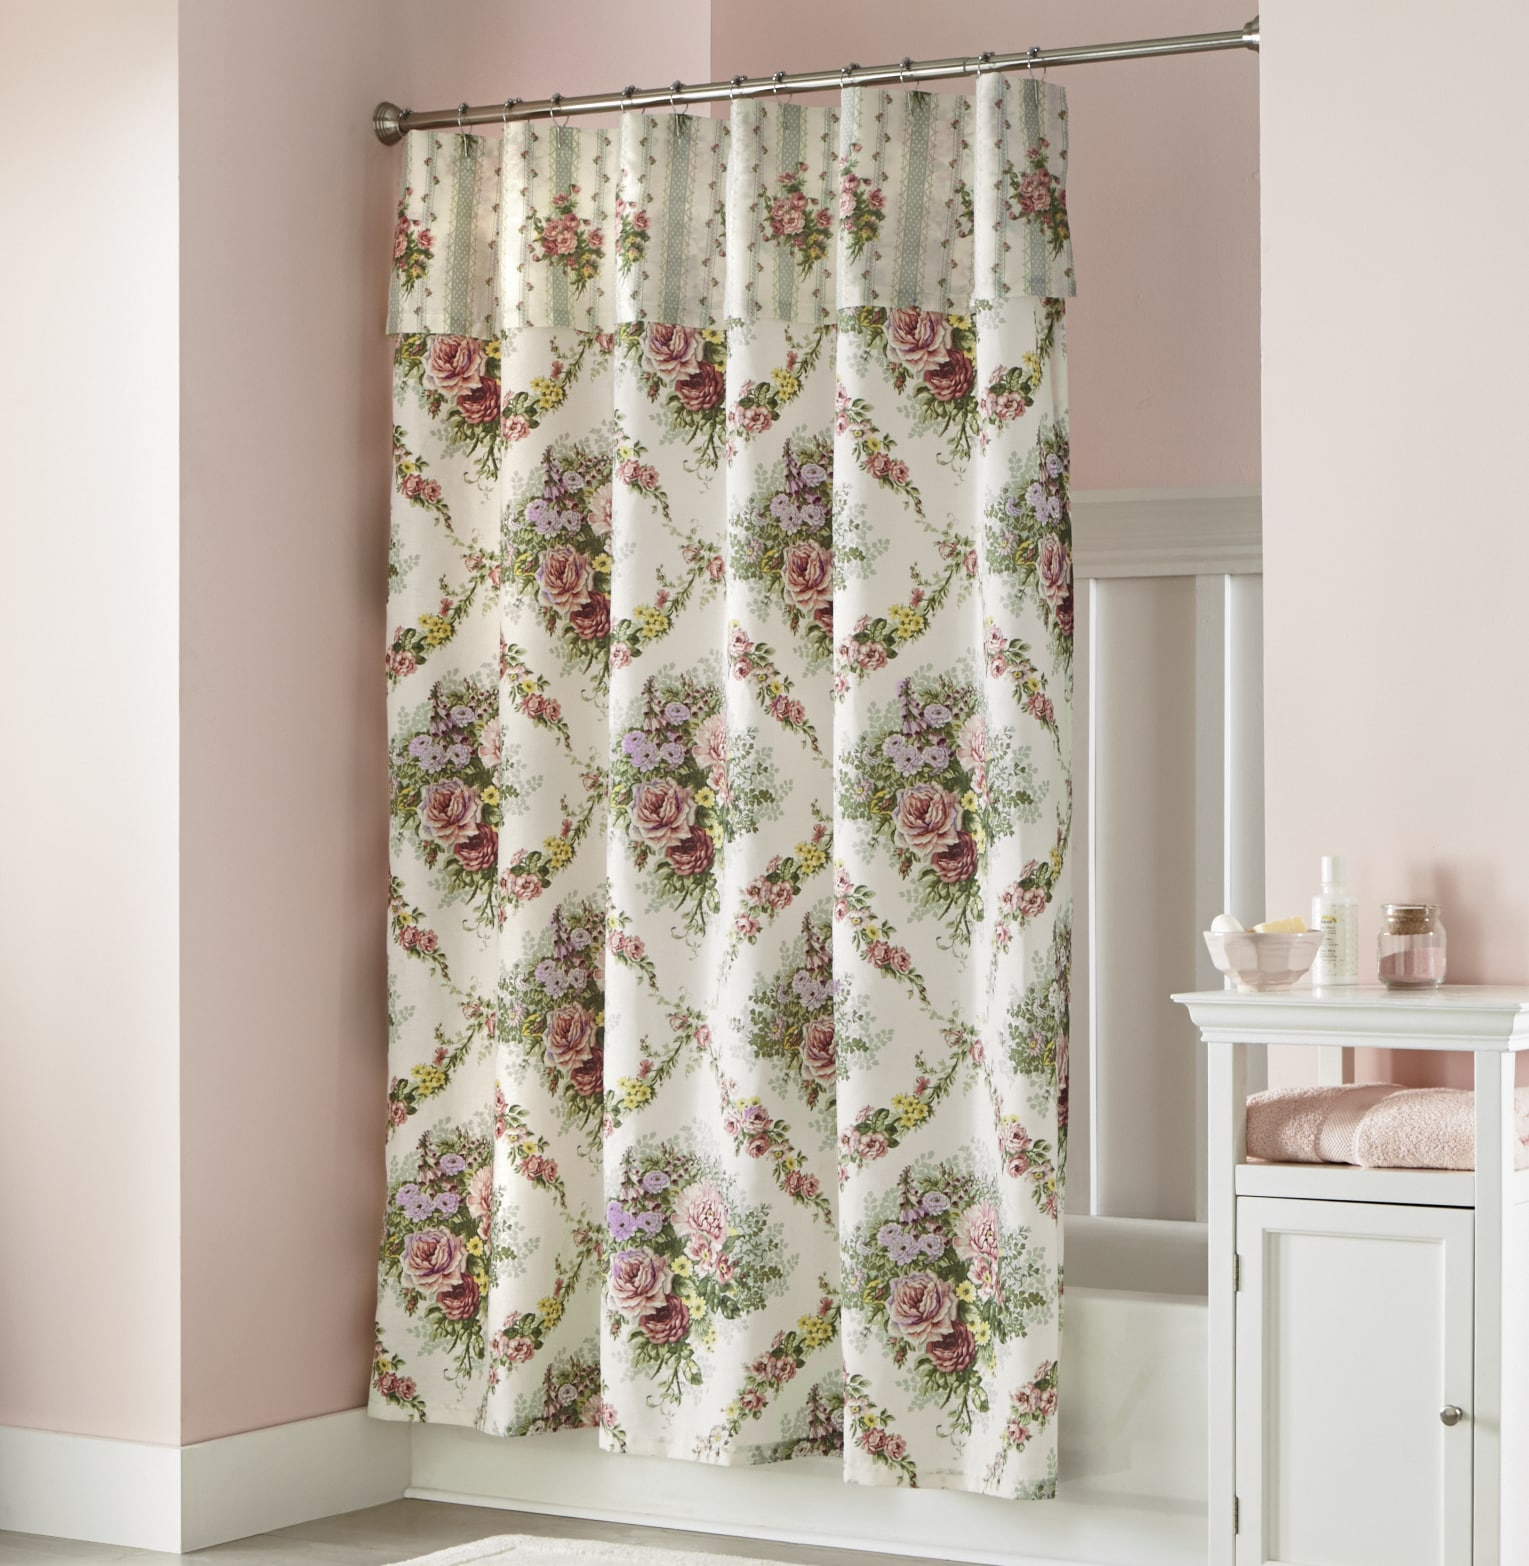 Cottage Shower Curtain Cottage Rose Shower Curtain With Attached Valance Seventh Avenue